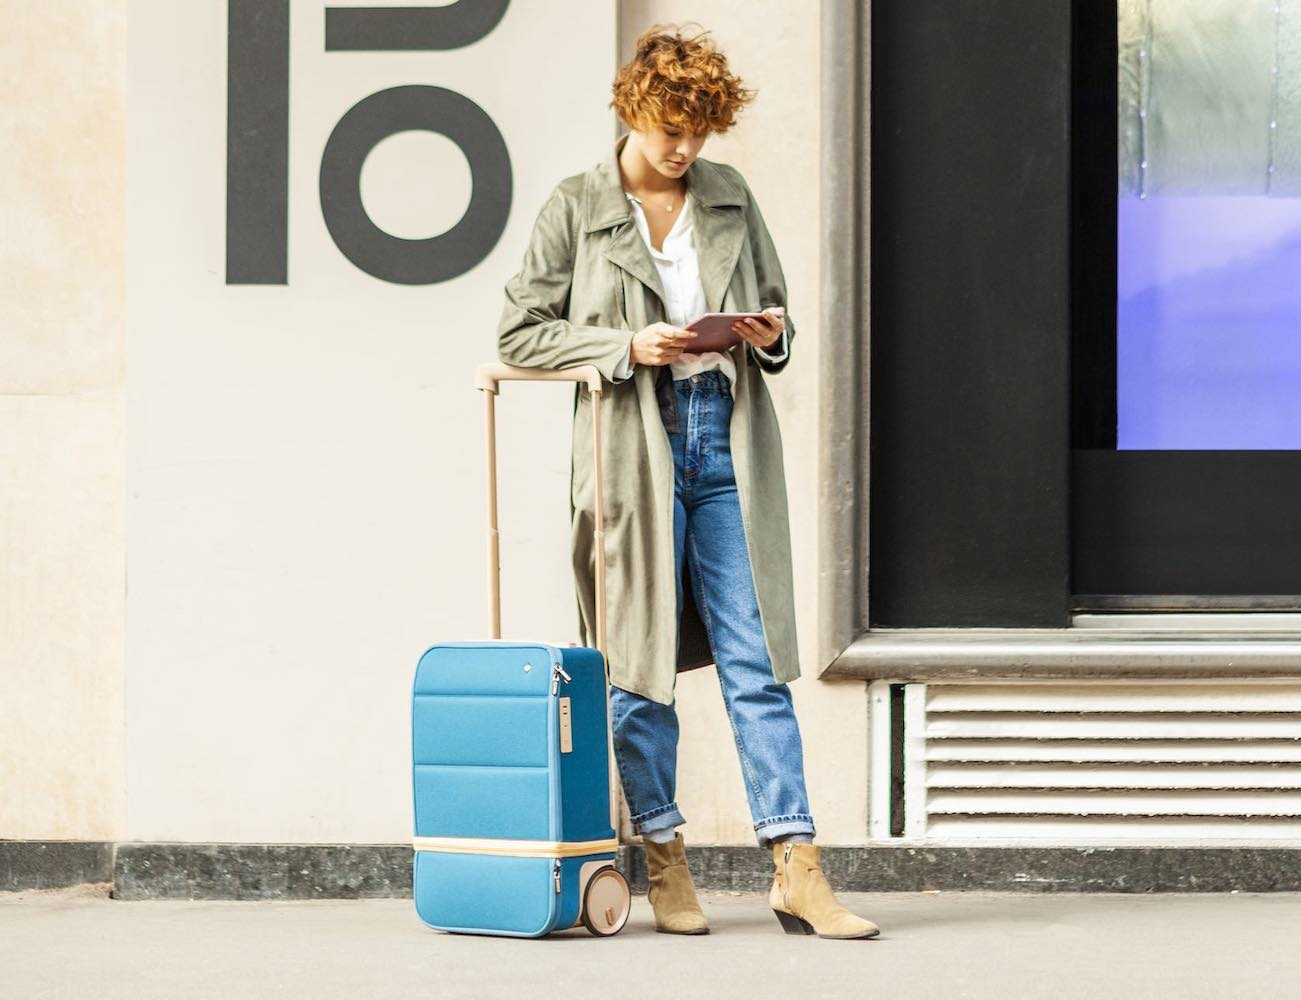 Kabuto Xtend Smart Carry-On Luggage expands to the size you need